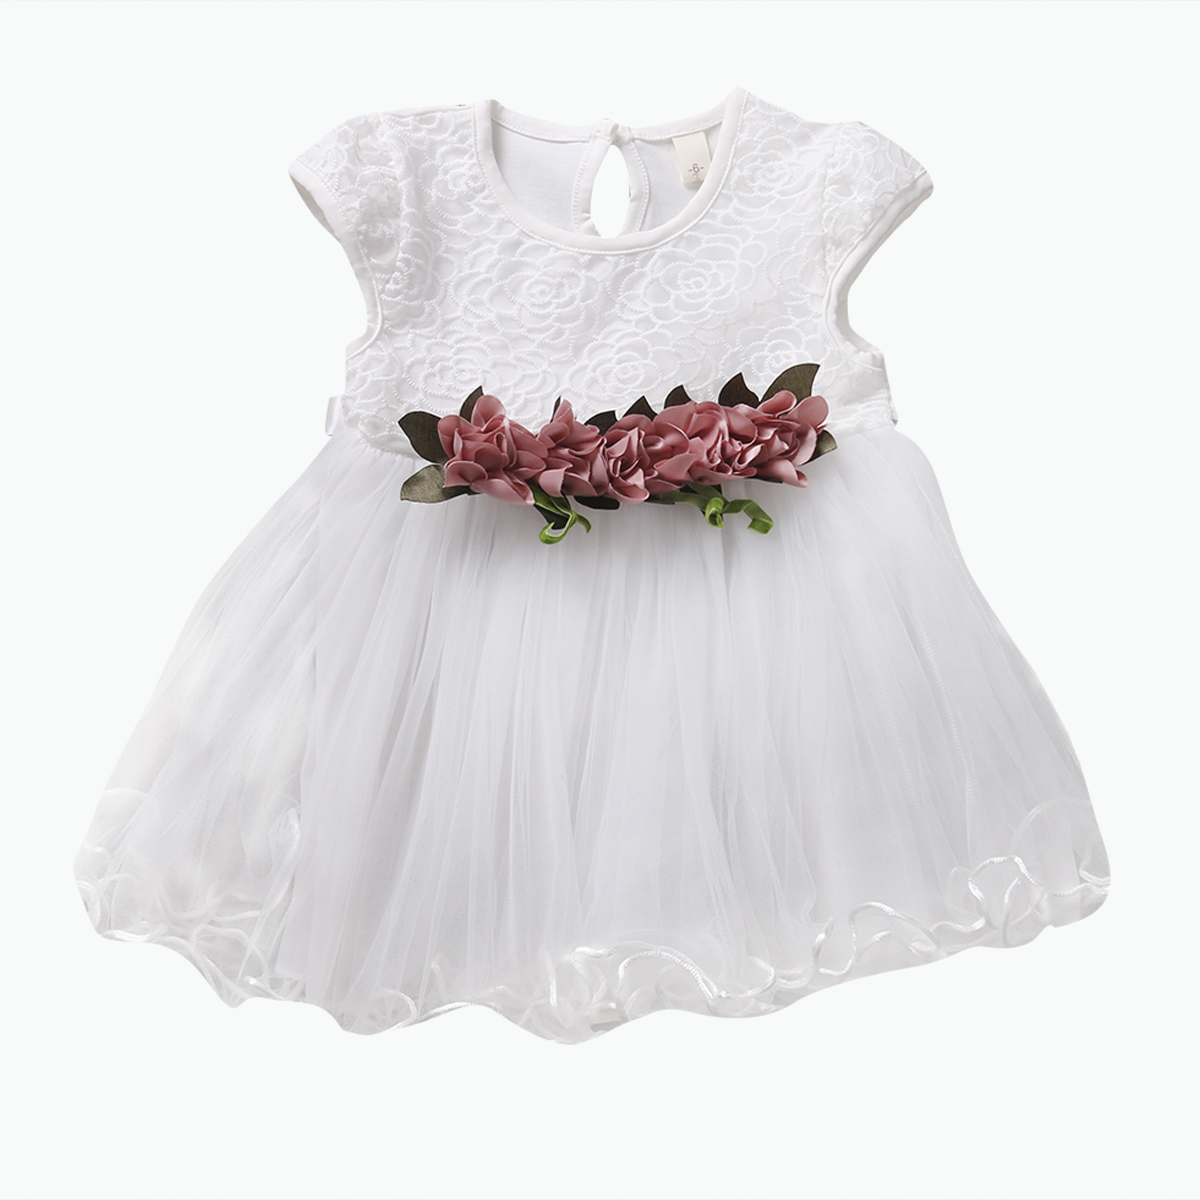 Princess Baby Girls Lace Dress Toddler Infant Kids Baby Girls Sleeveless Ball Gown Cotton Kids Girls Summer Floral Dress Outfits fashion toddler girls princess dress elegant floral bow vestidos for baby girl winter infant kids cotton lace dresses